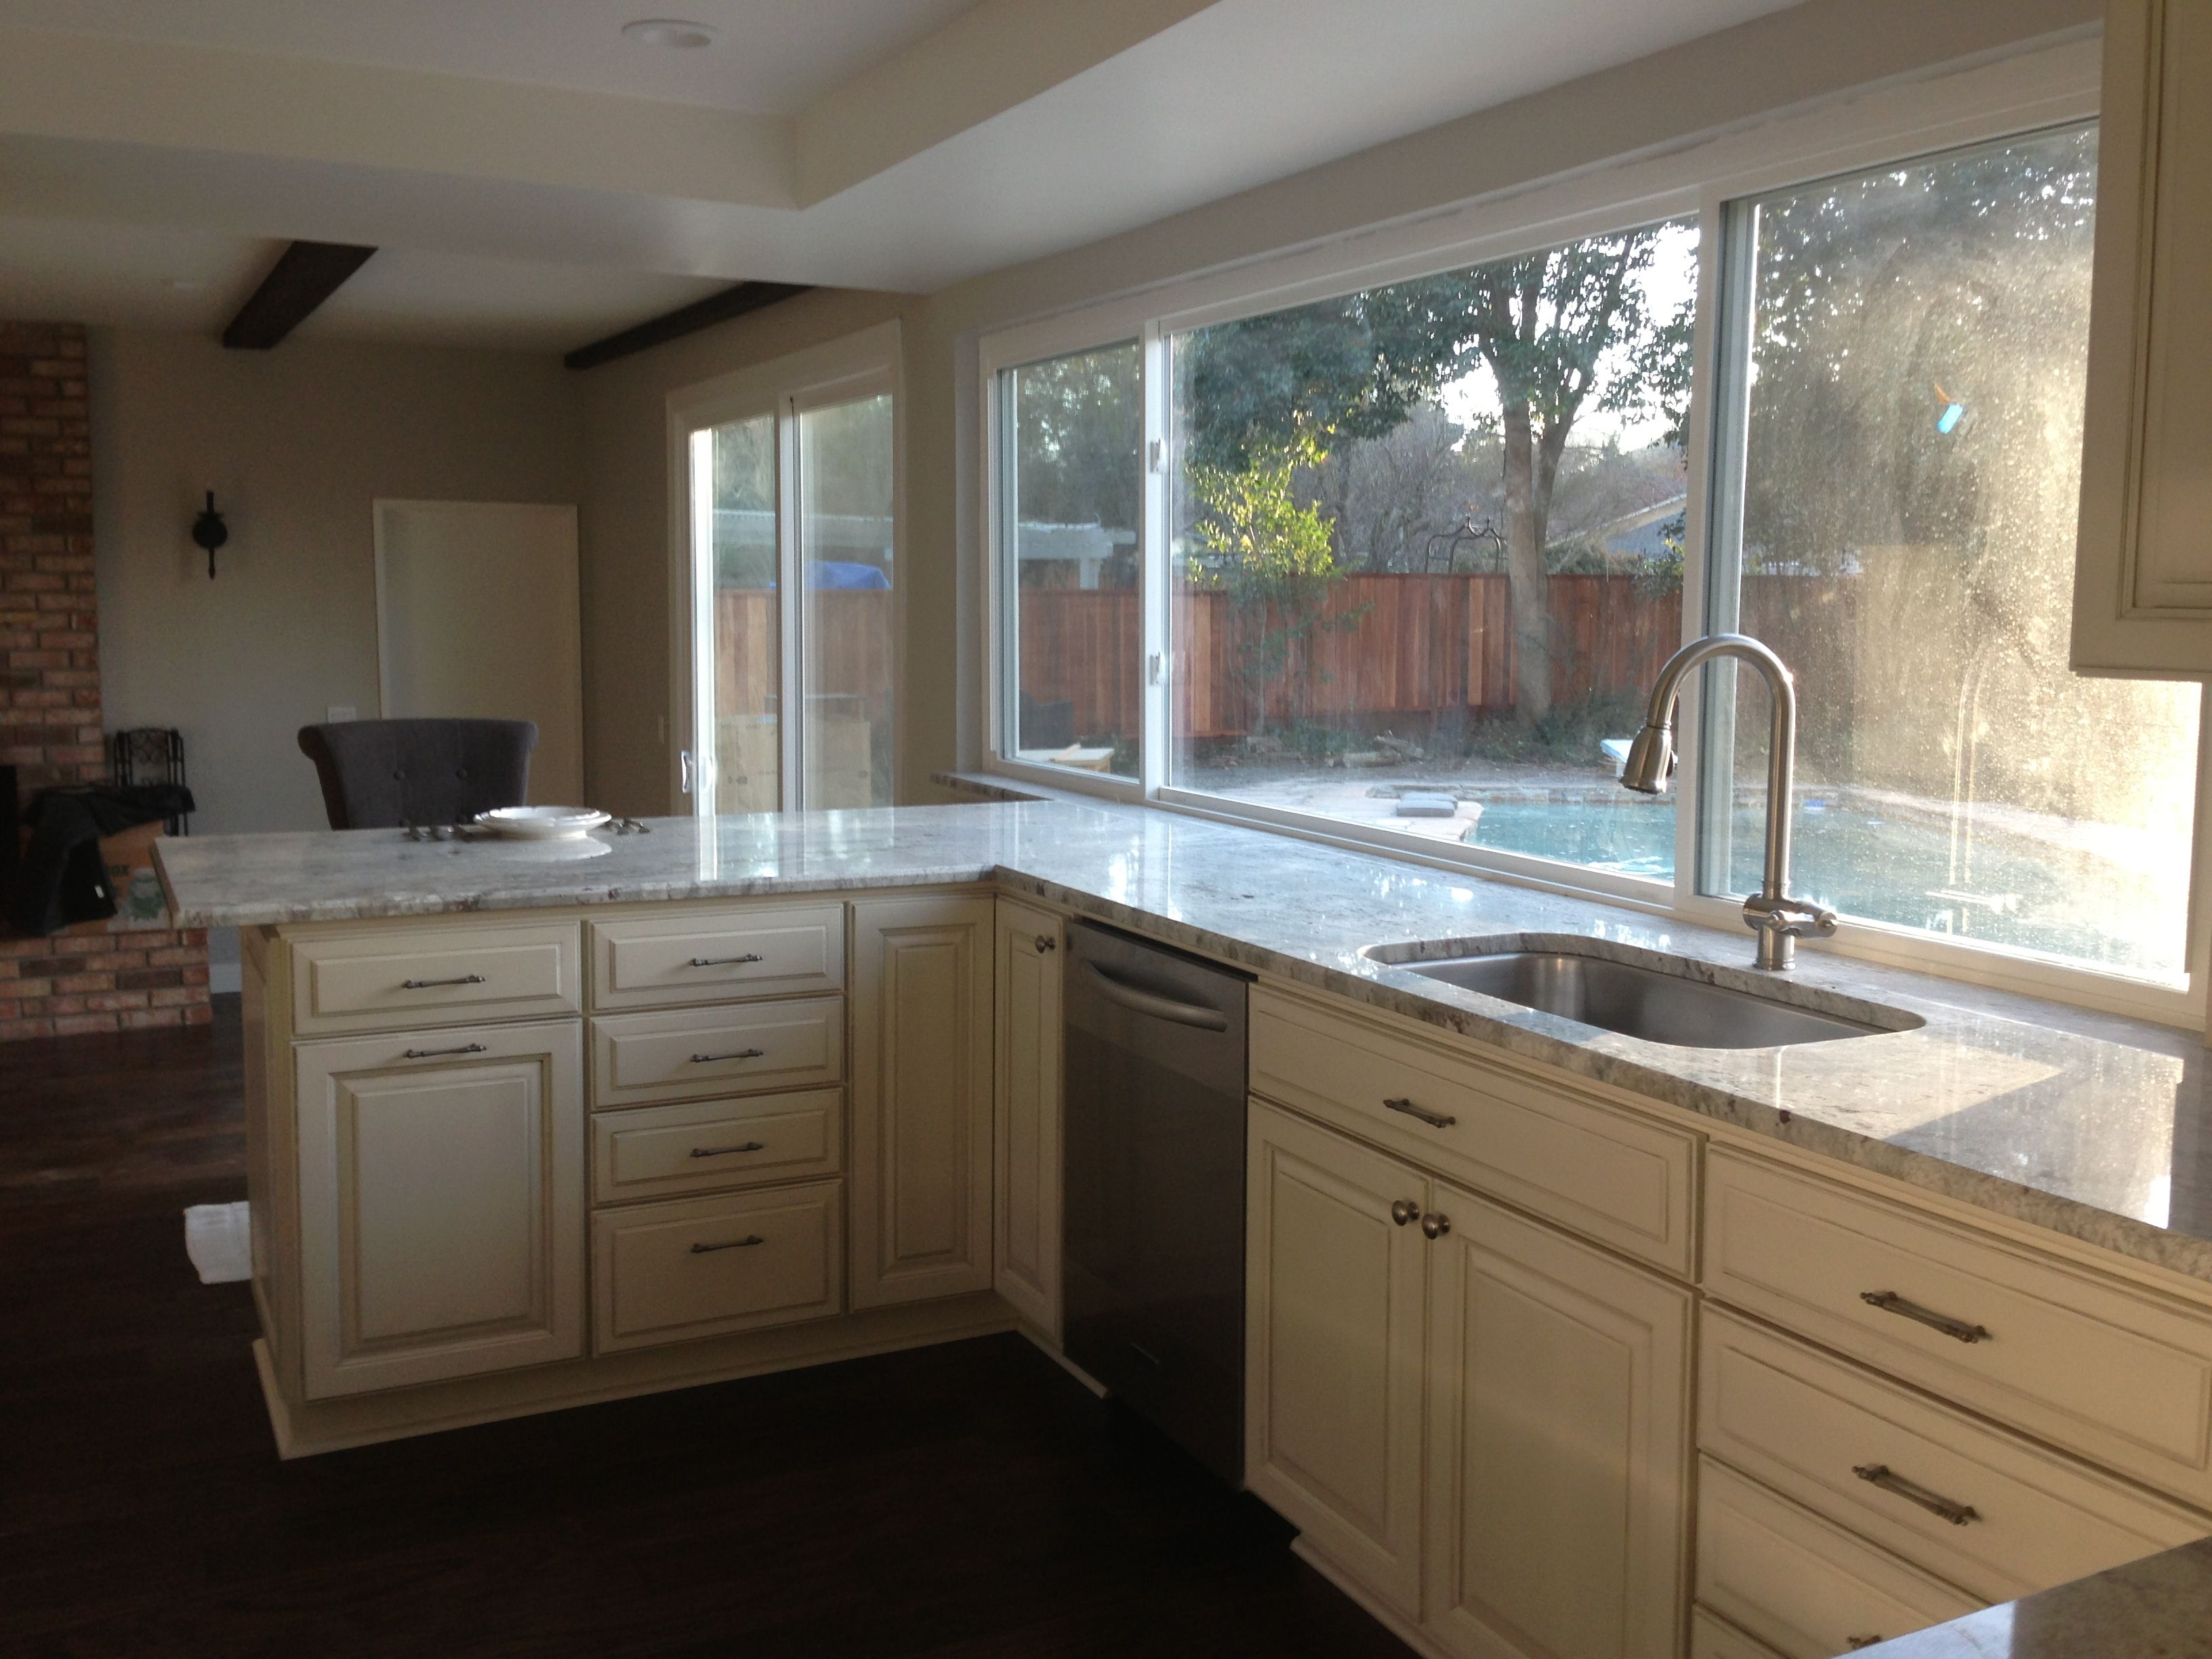 on thomasville a cabinets island cabinet images best pinterest for kitchen ideas of white fresh luxury stylish